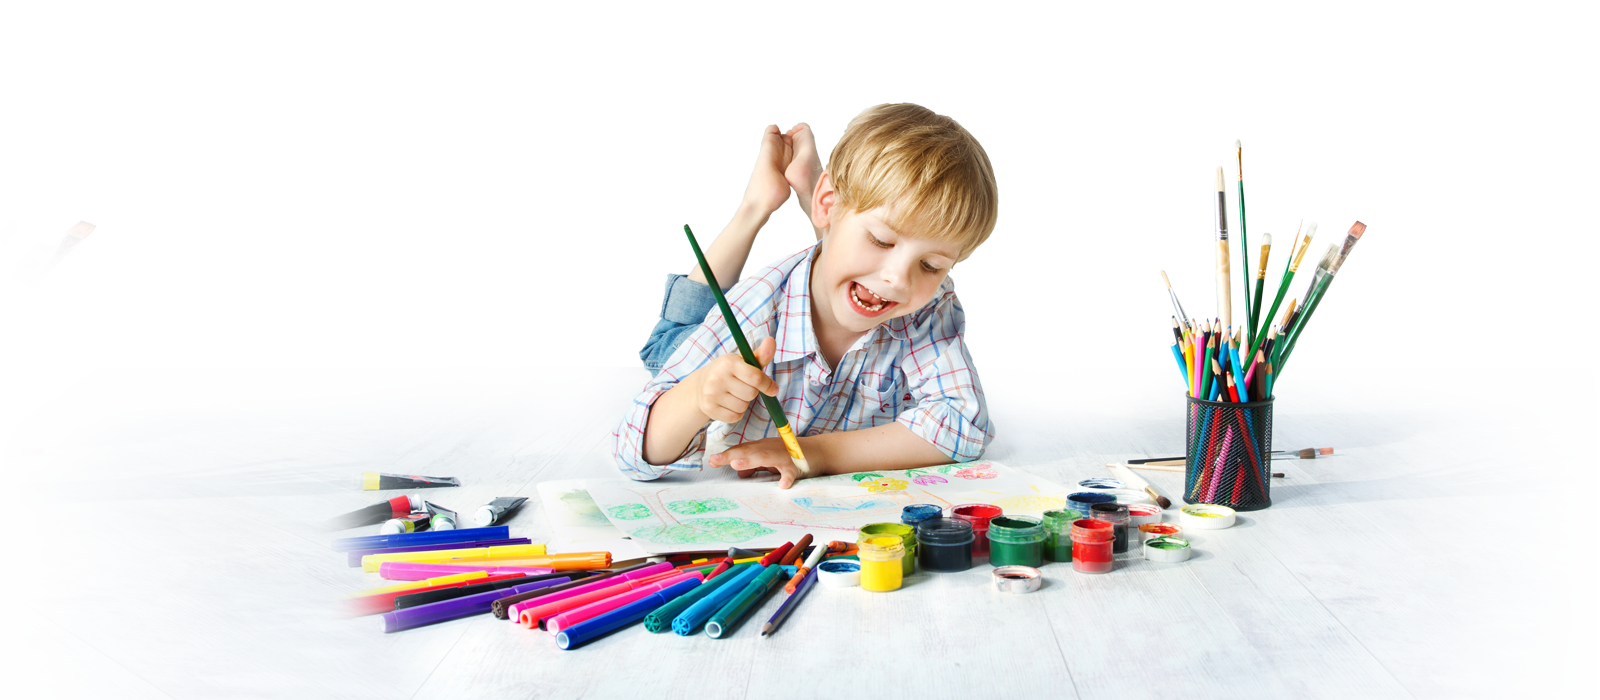 Kids painting png. Bigstock child with color